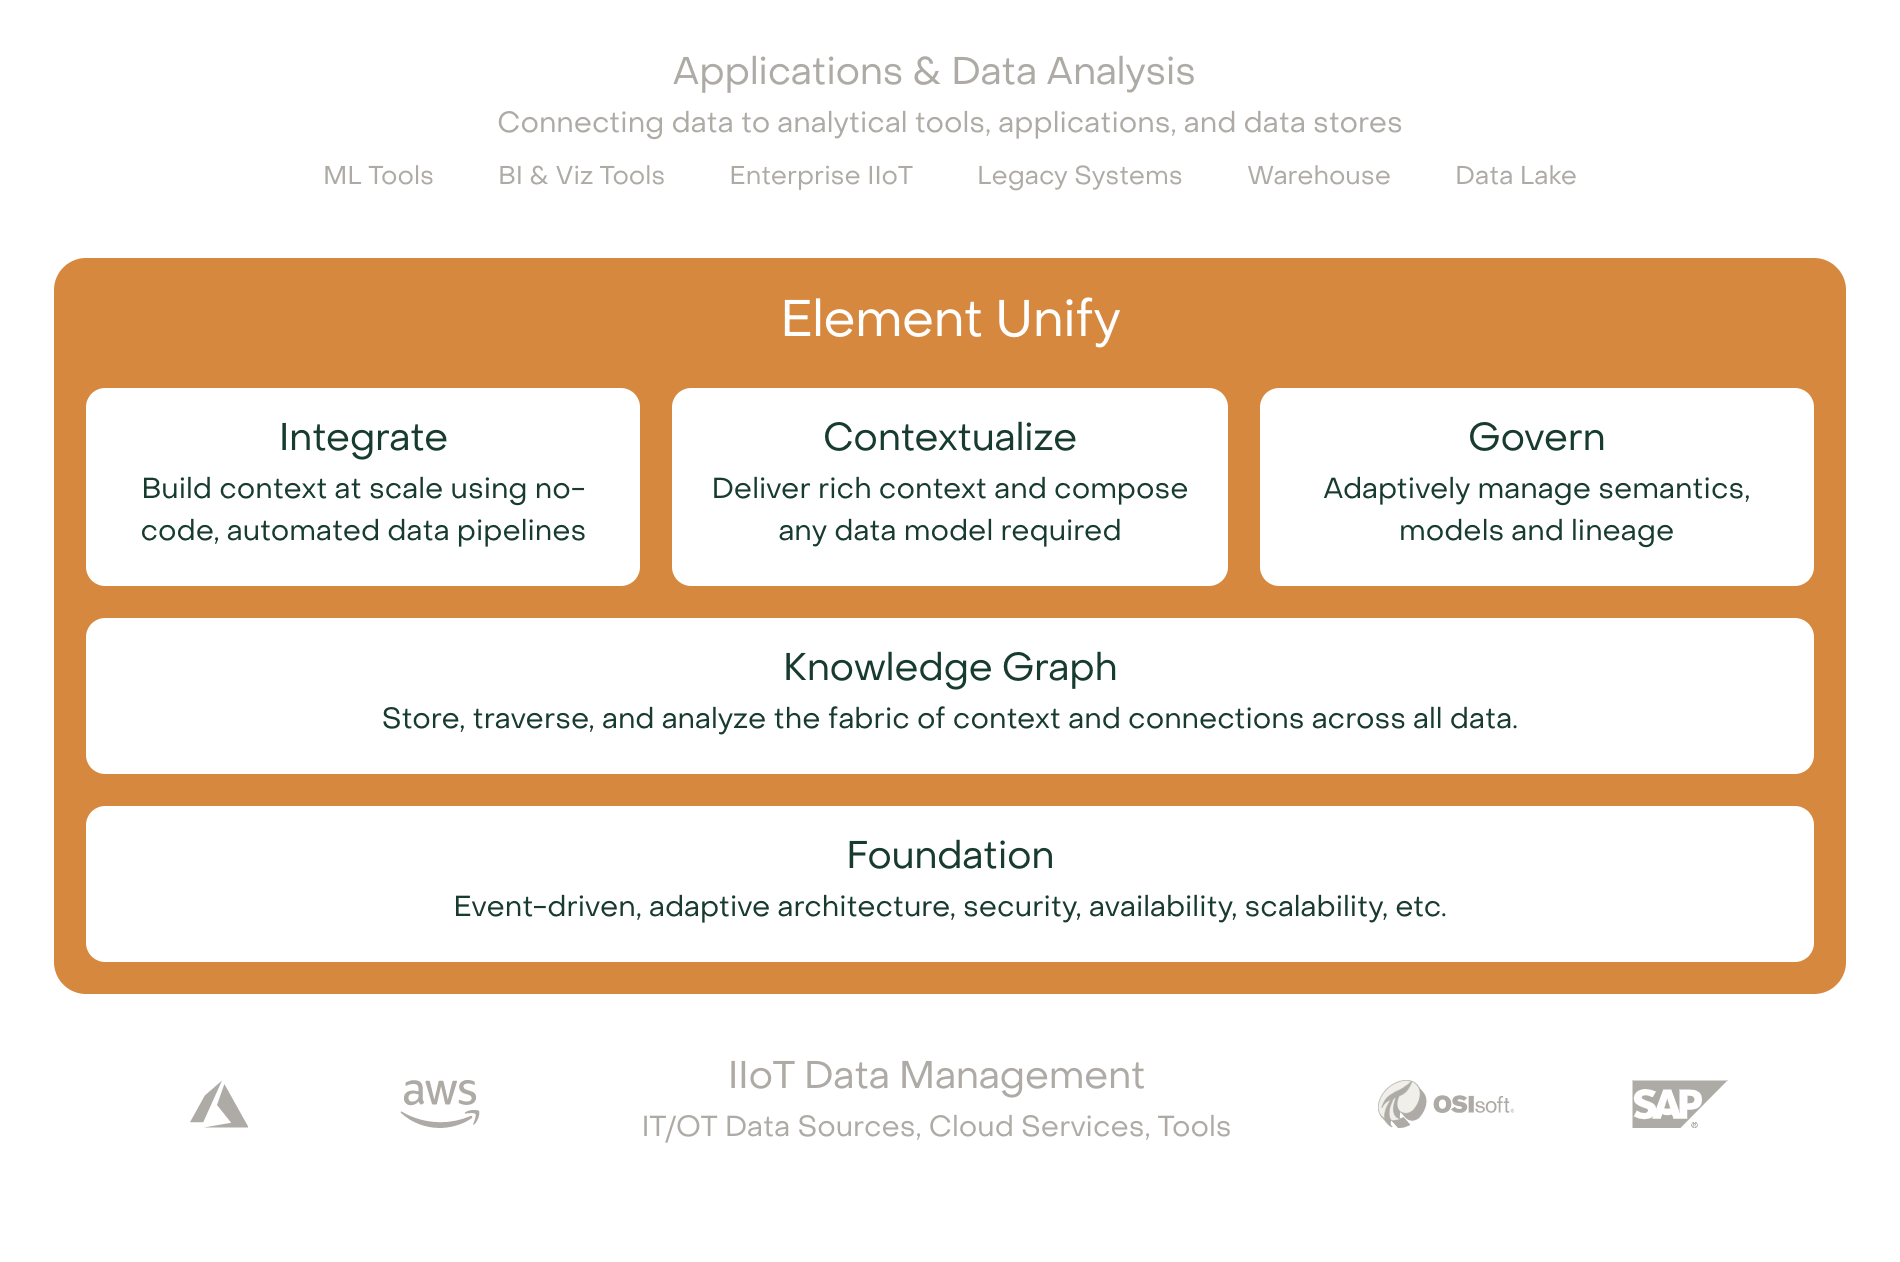 applications and data analysis